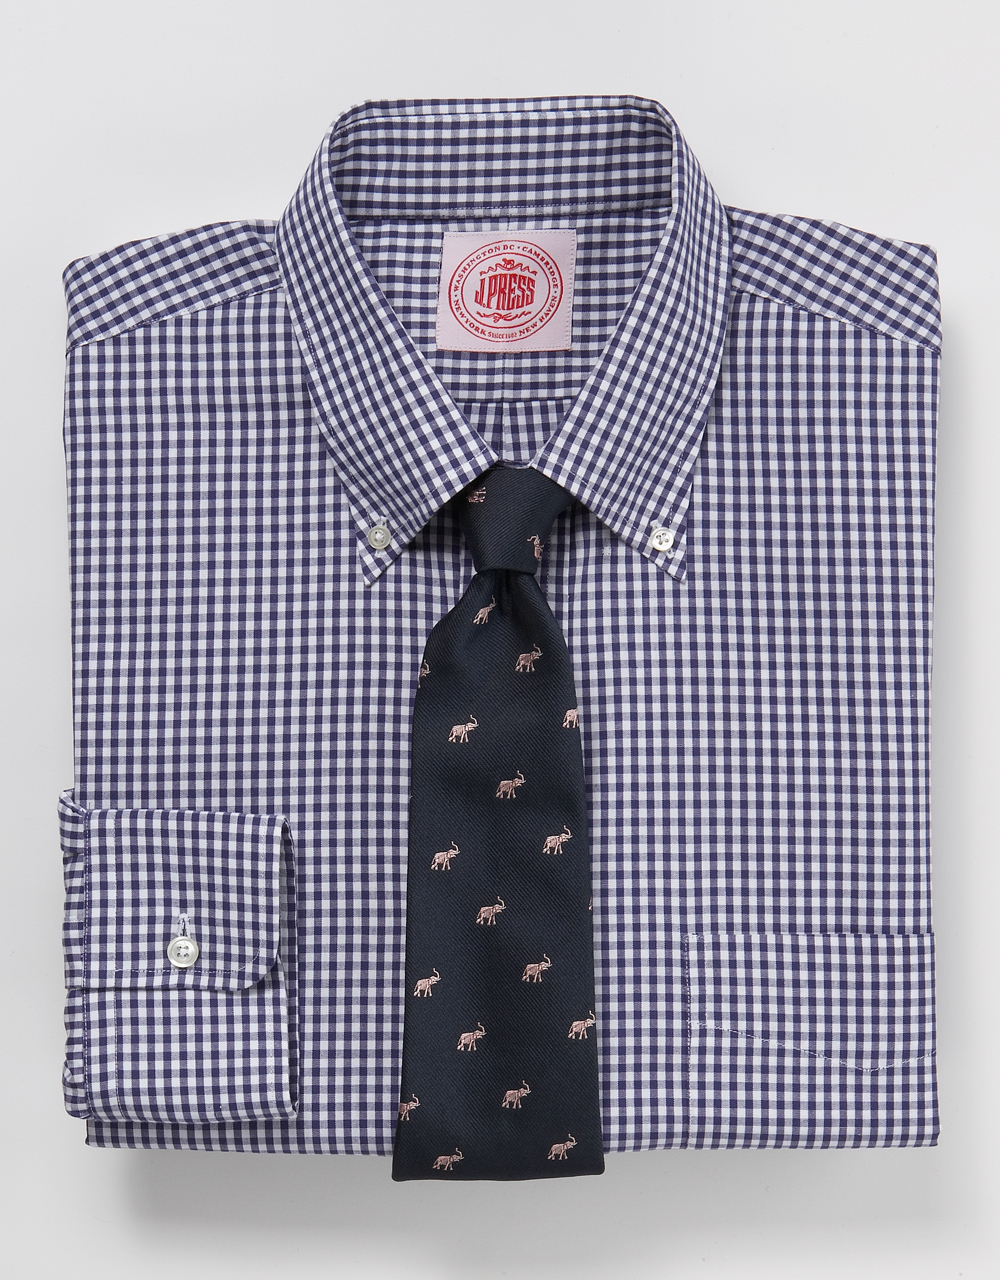 J Press Navy Gingham Shirt Post Modern